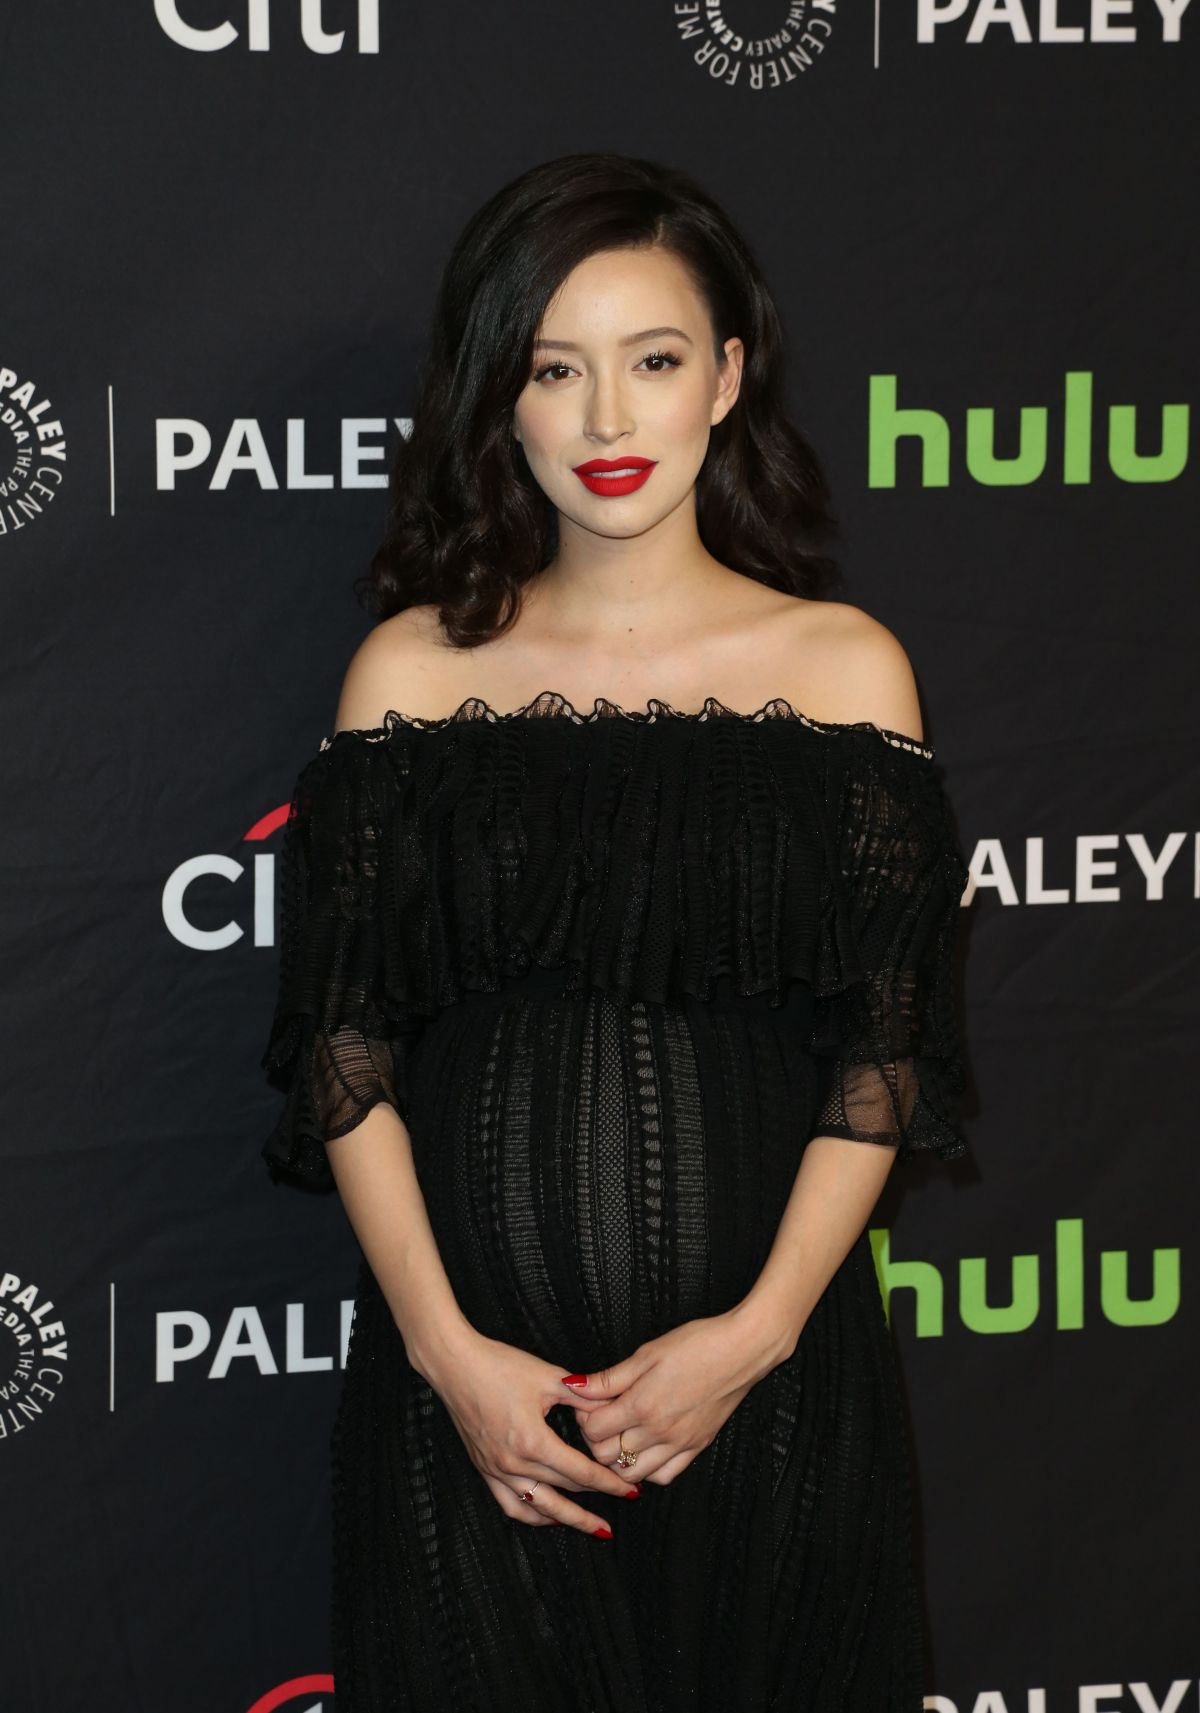 CHRISTIAN SERRATOSat The Walking Dead Panel at Paleyfest in Los Angeles 03/15/2017